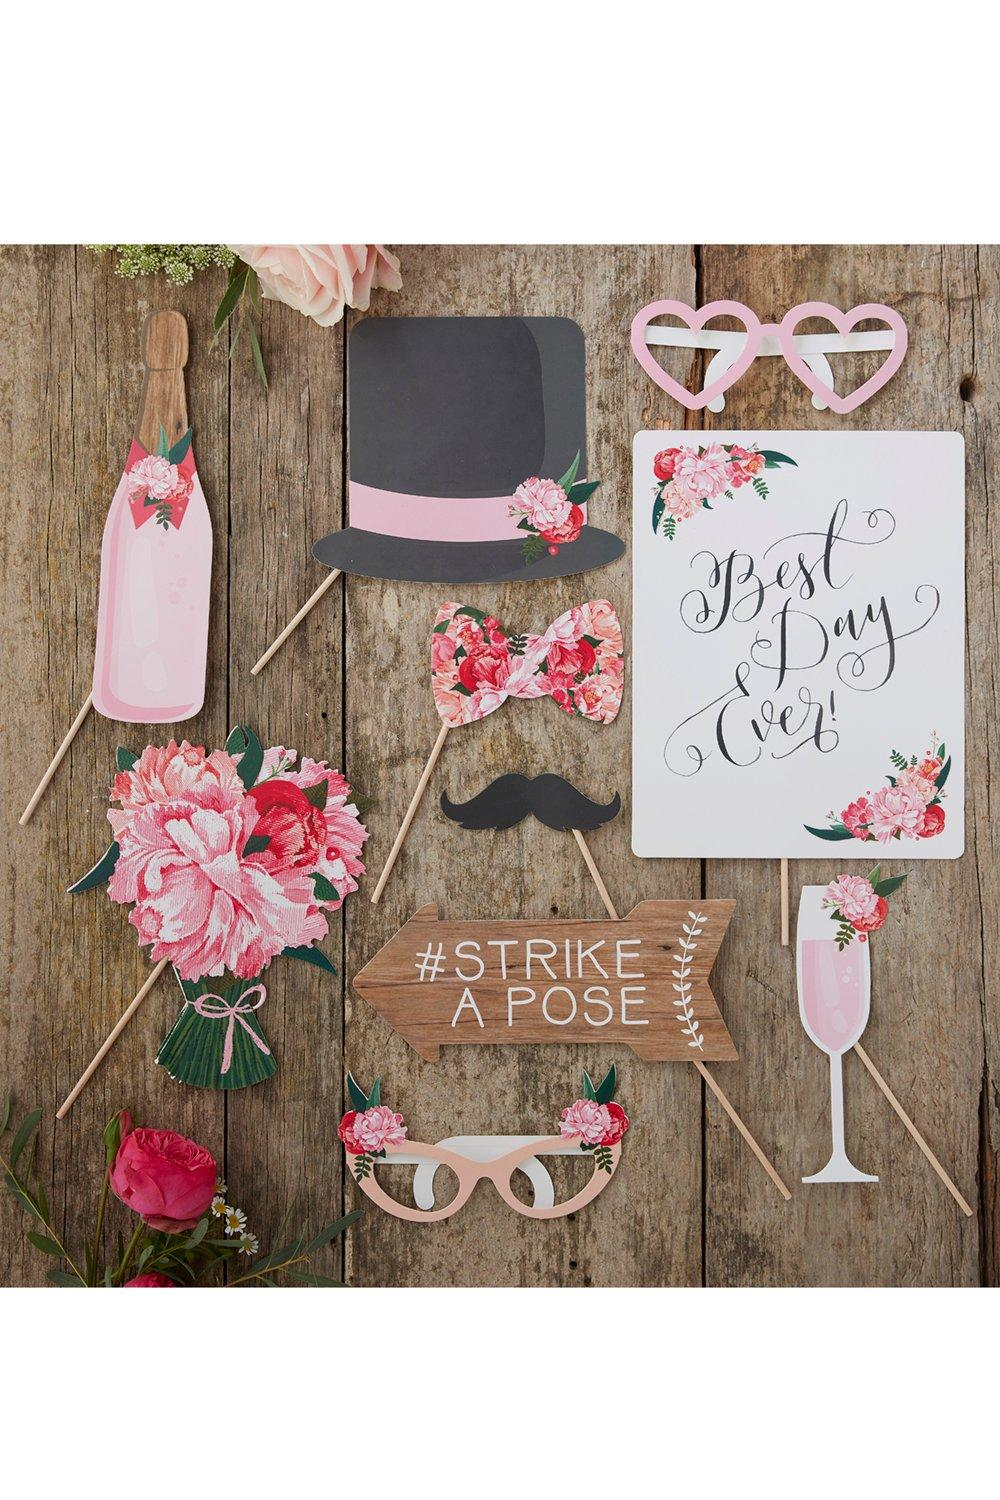 Photo Booth Selfie Props - multi - Wedding Photo B